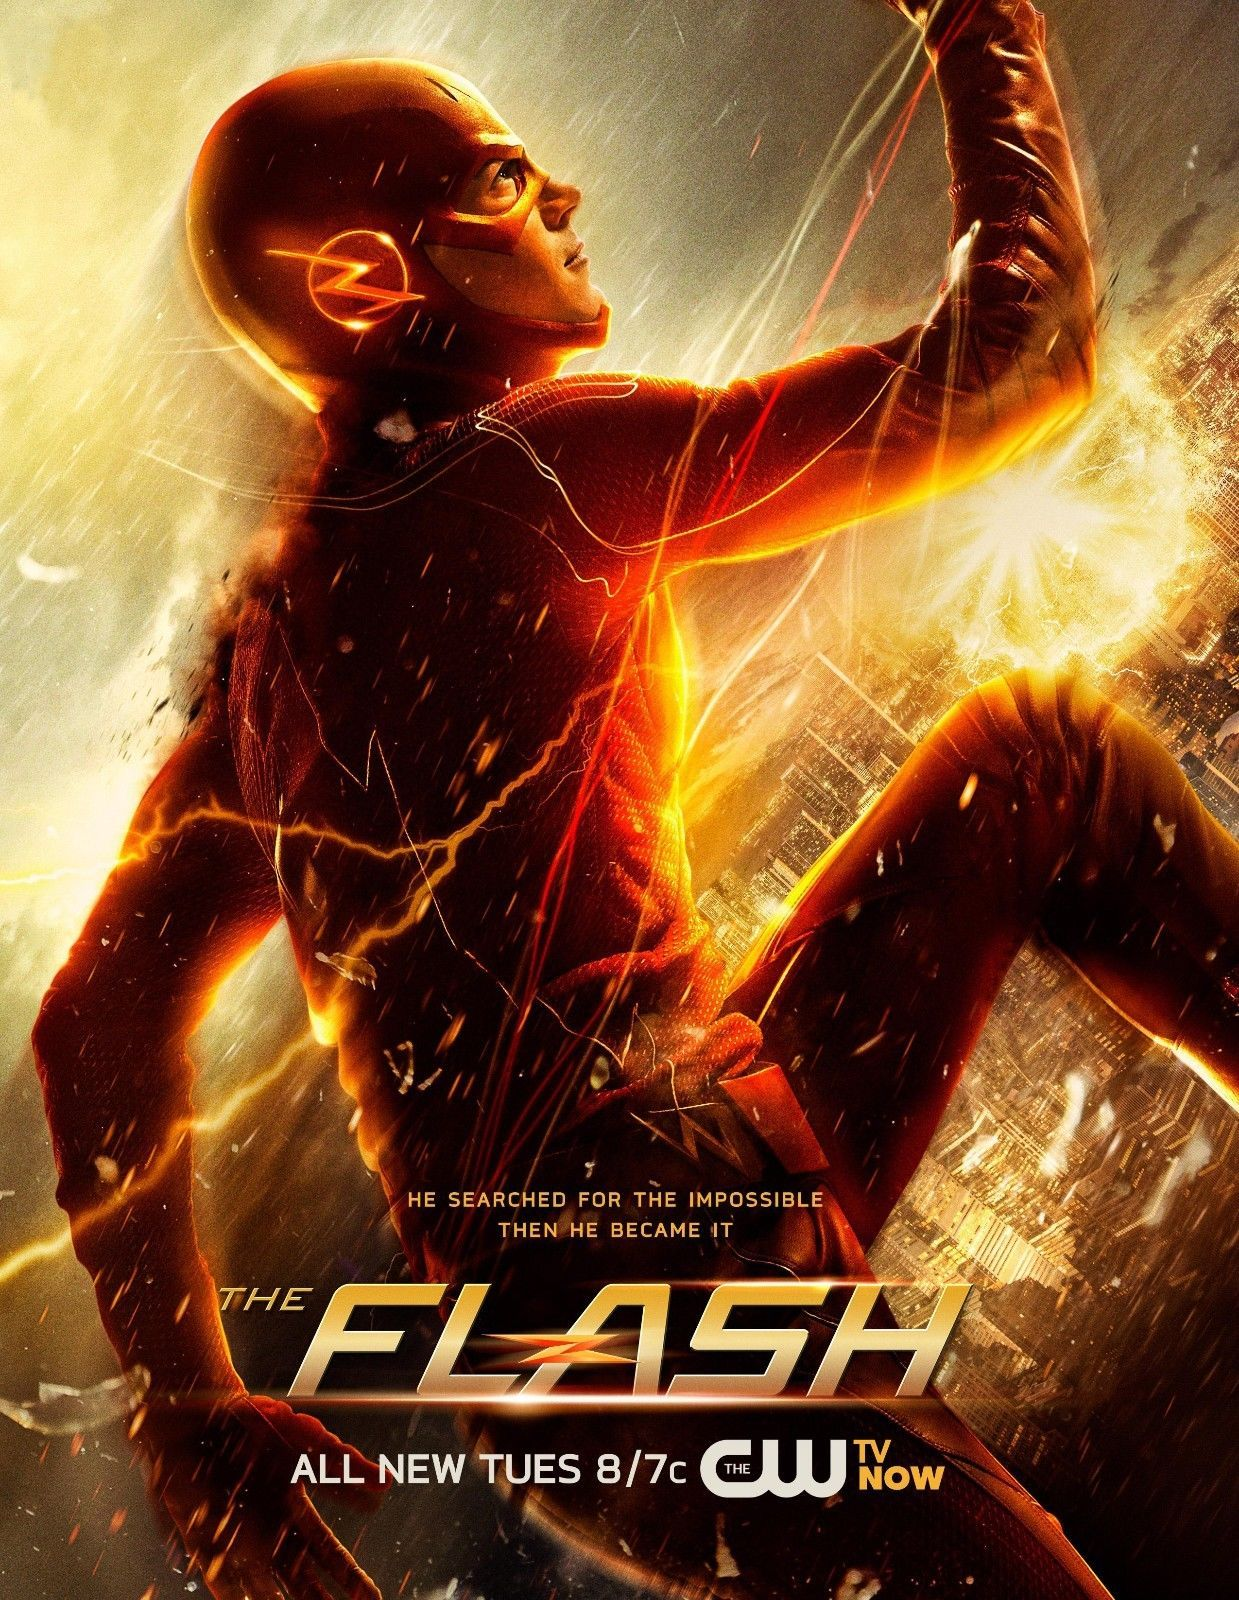 The Flash Cw Tv Poster 24x36 Grant Gustin Candice Patton New The Flash Season Flash Tv Series The Flash Poster